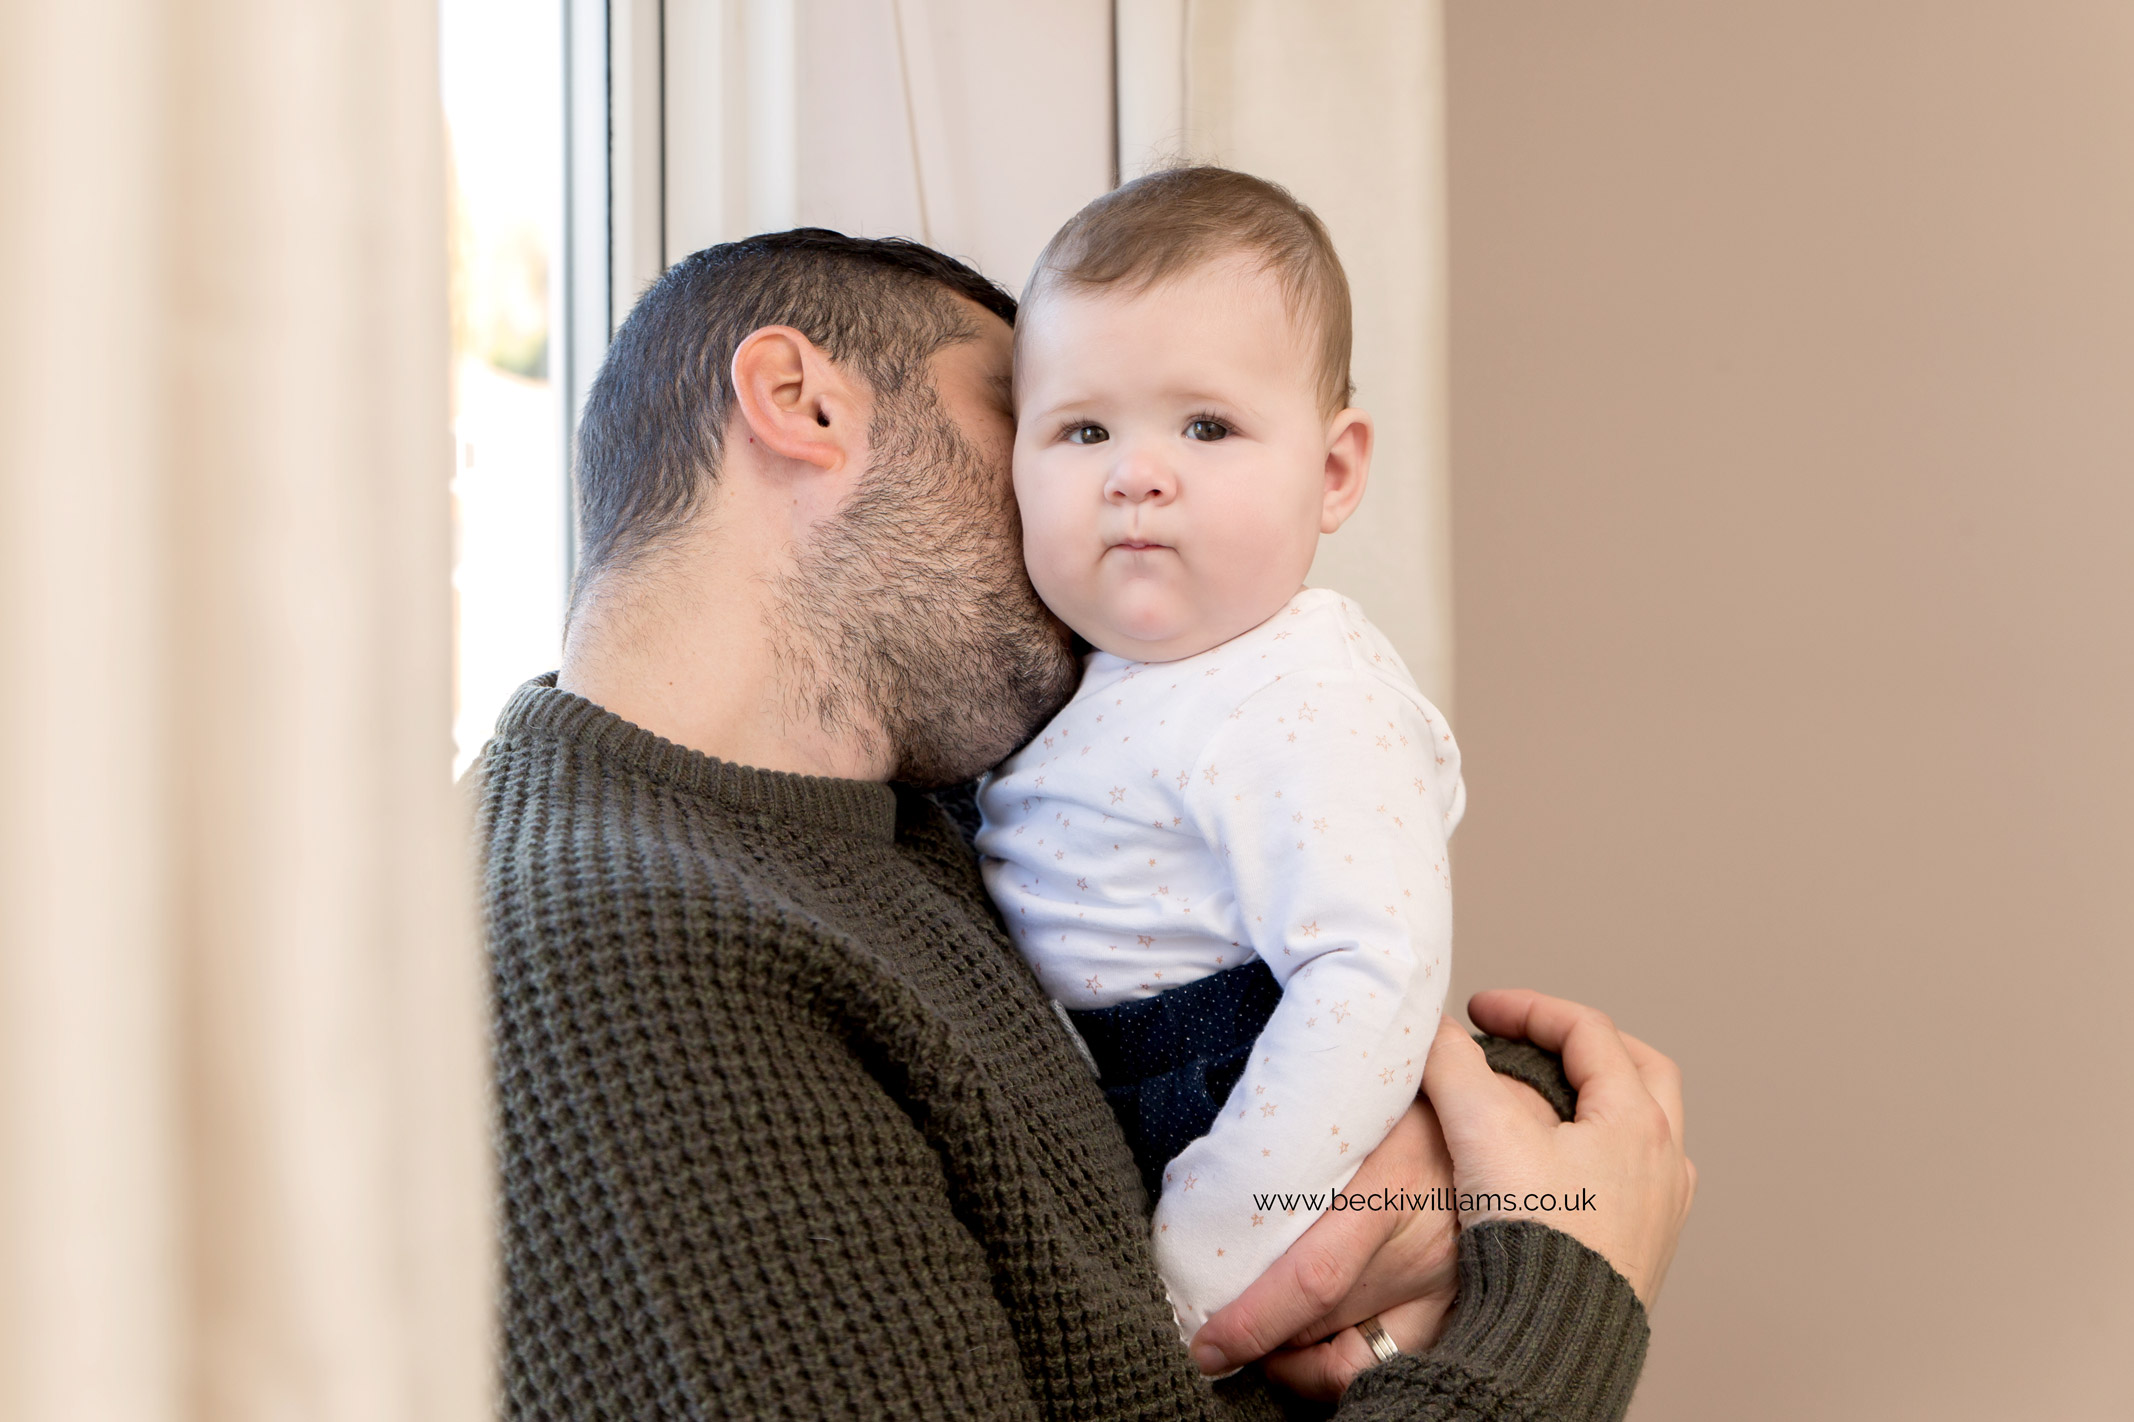 baby-photography-6-month-in-hertfordshire-girl-natural-at-home-dad-cuddles.jpg